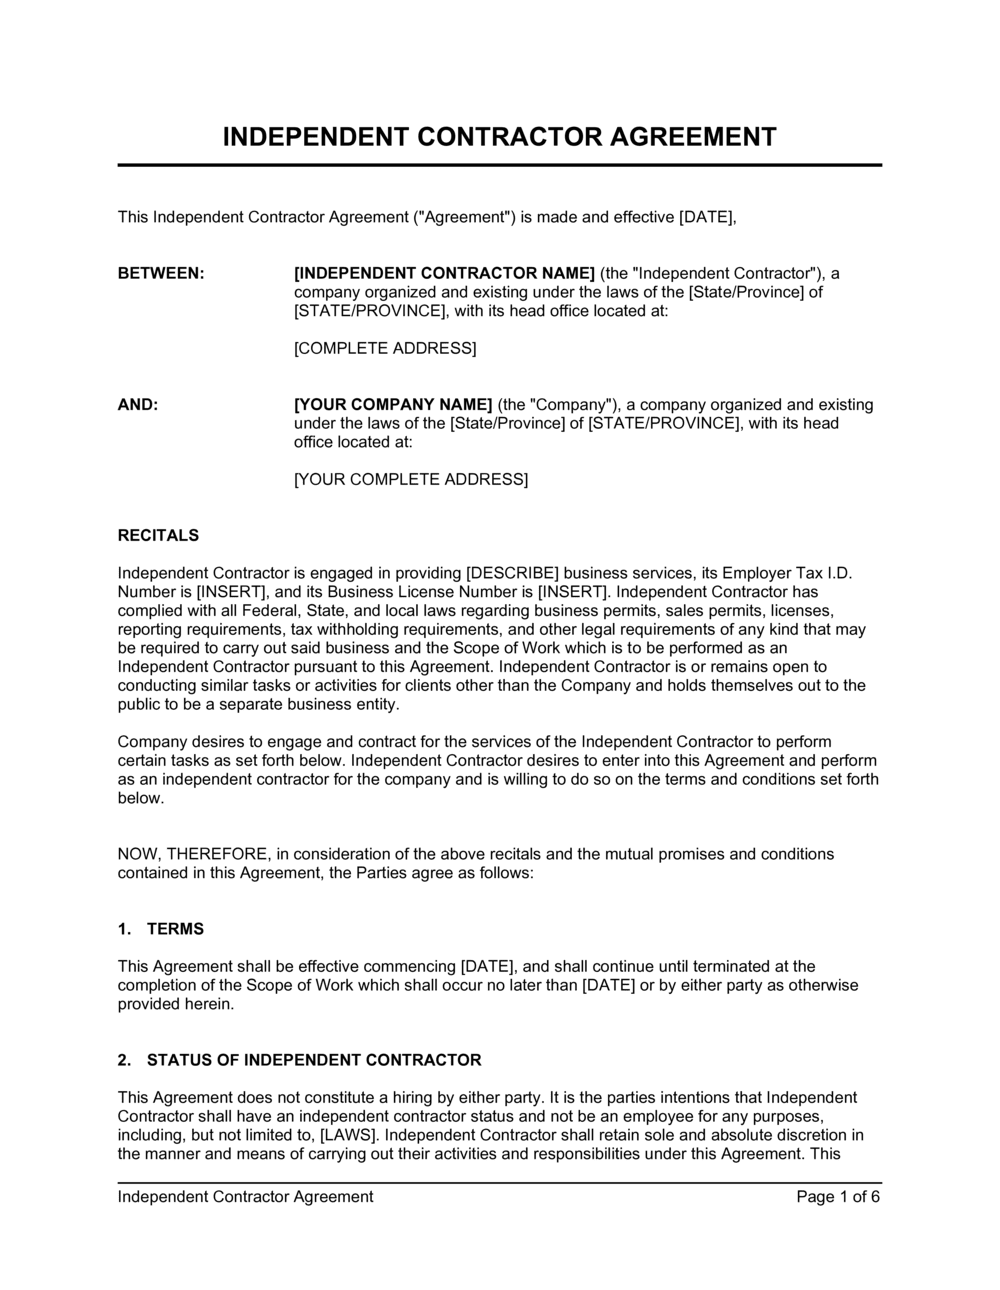 Business-in-a-Box's Independent Contractor Agreement Template